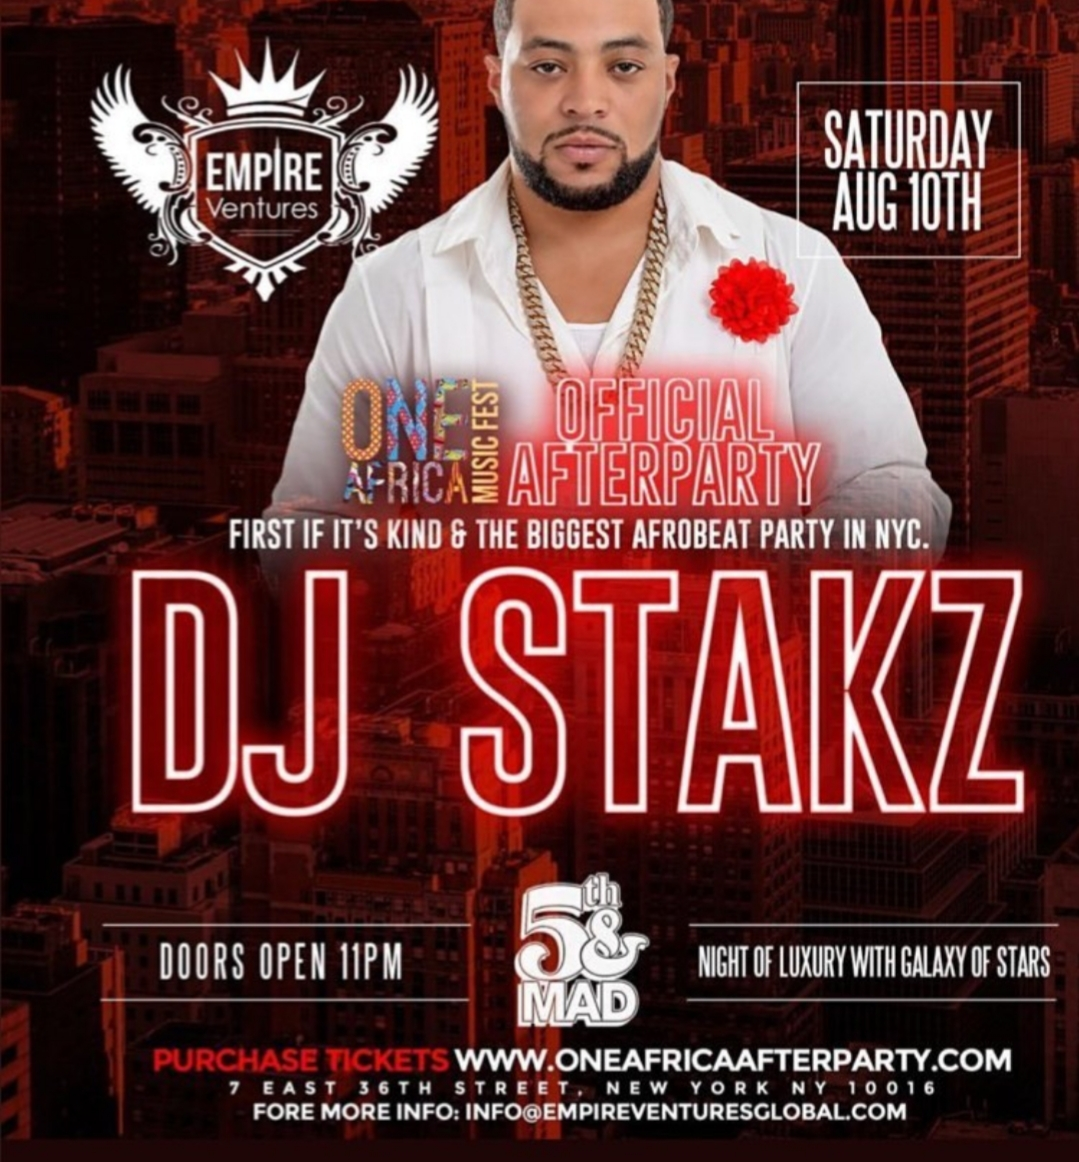 One Africa Music Fest 2019 - After Party - DJ Stakz - August 10.jpg